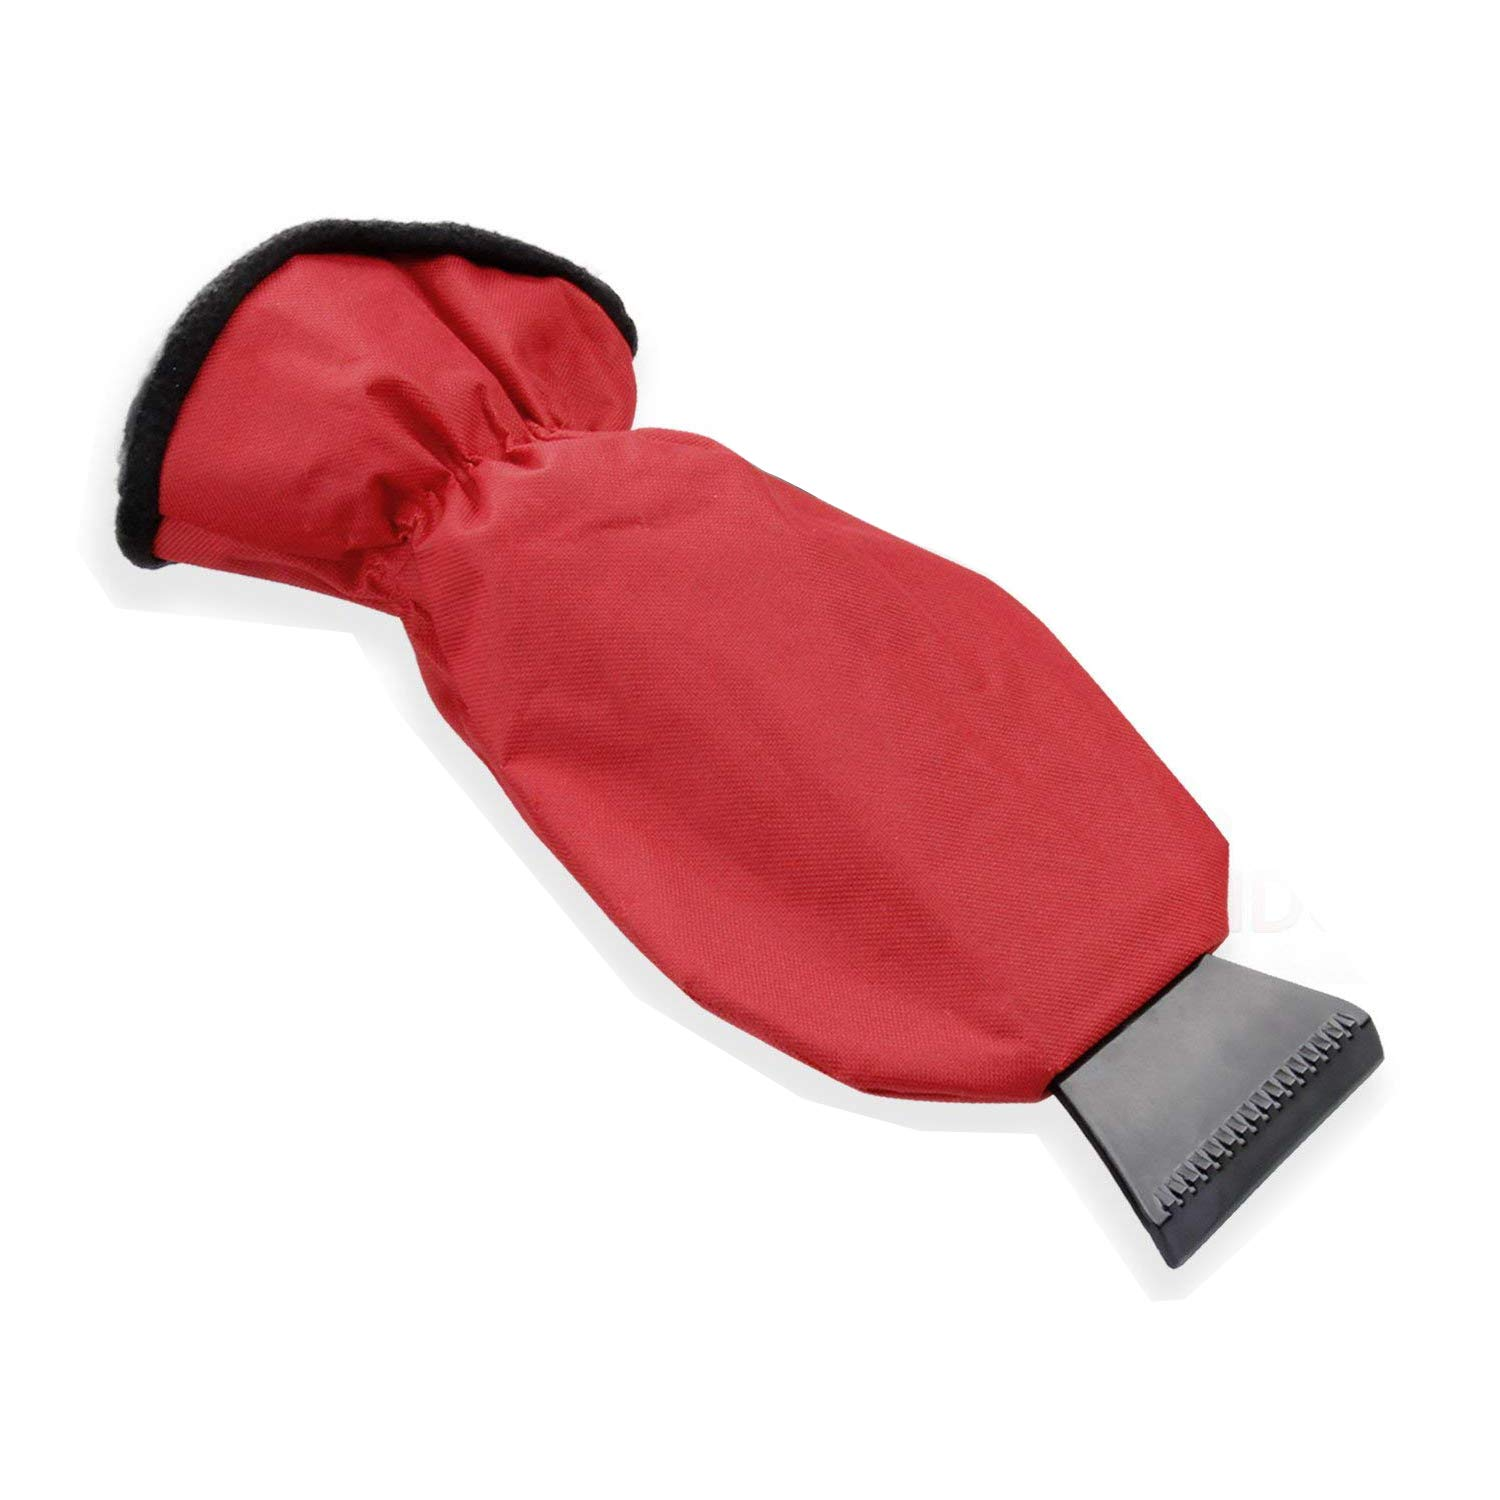 Deluxe Car Windscreen Frost Ice Scraper with Thermal Insulated Glove Mitt Simply